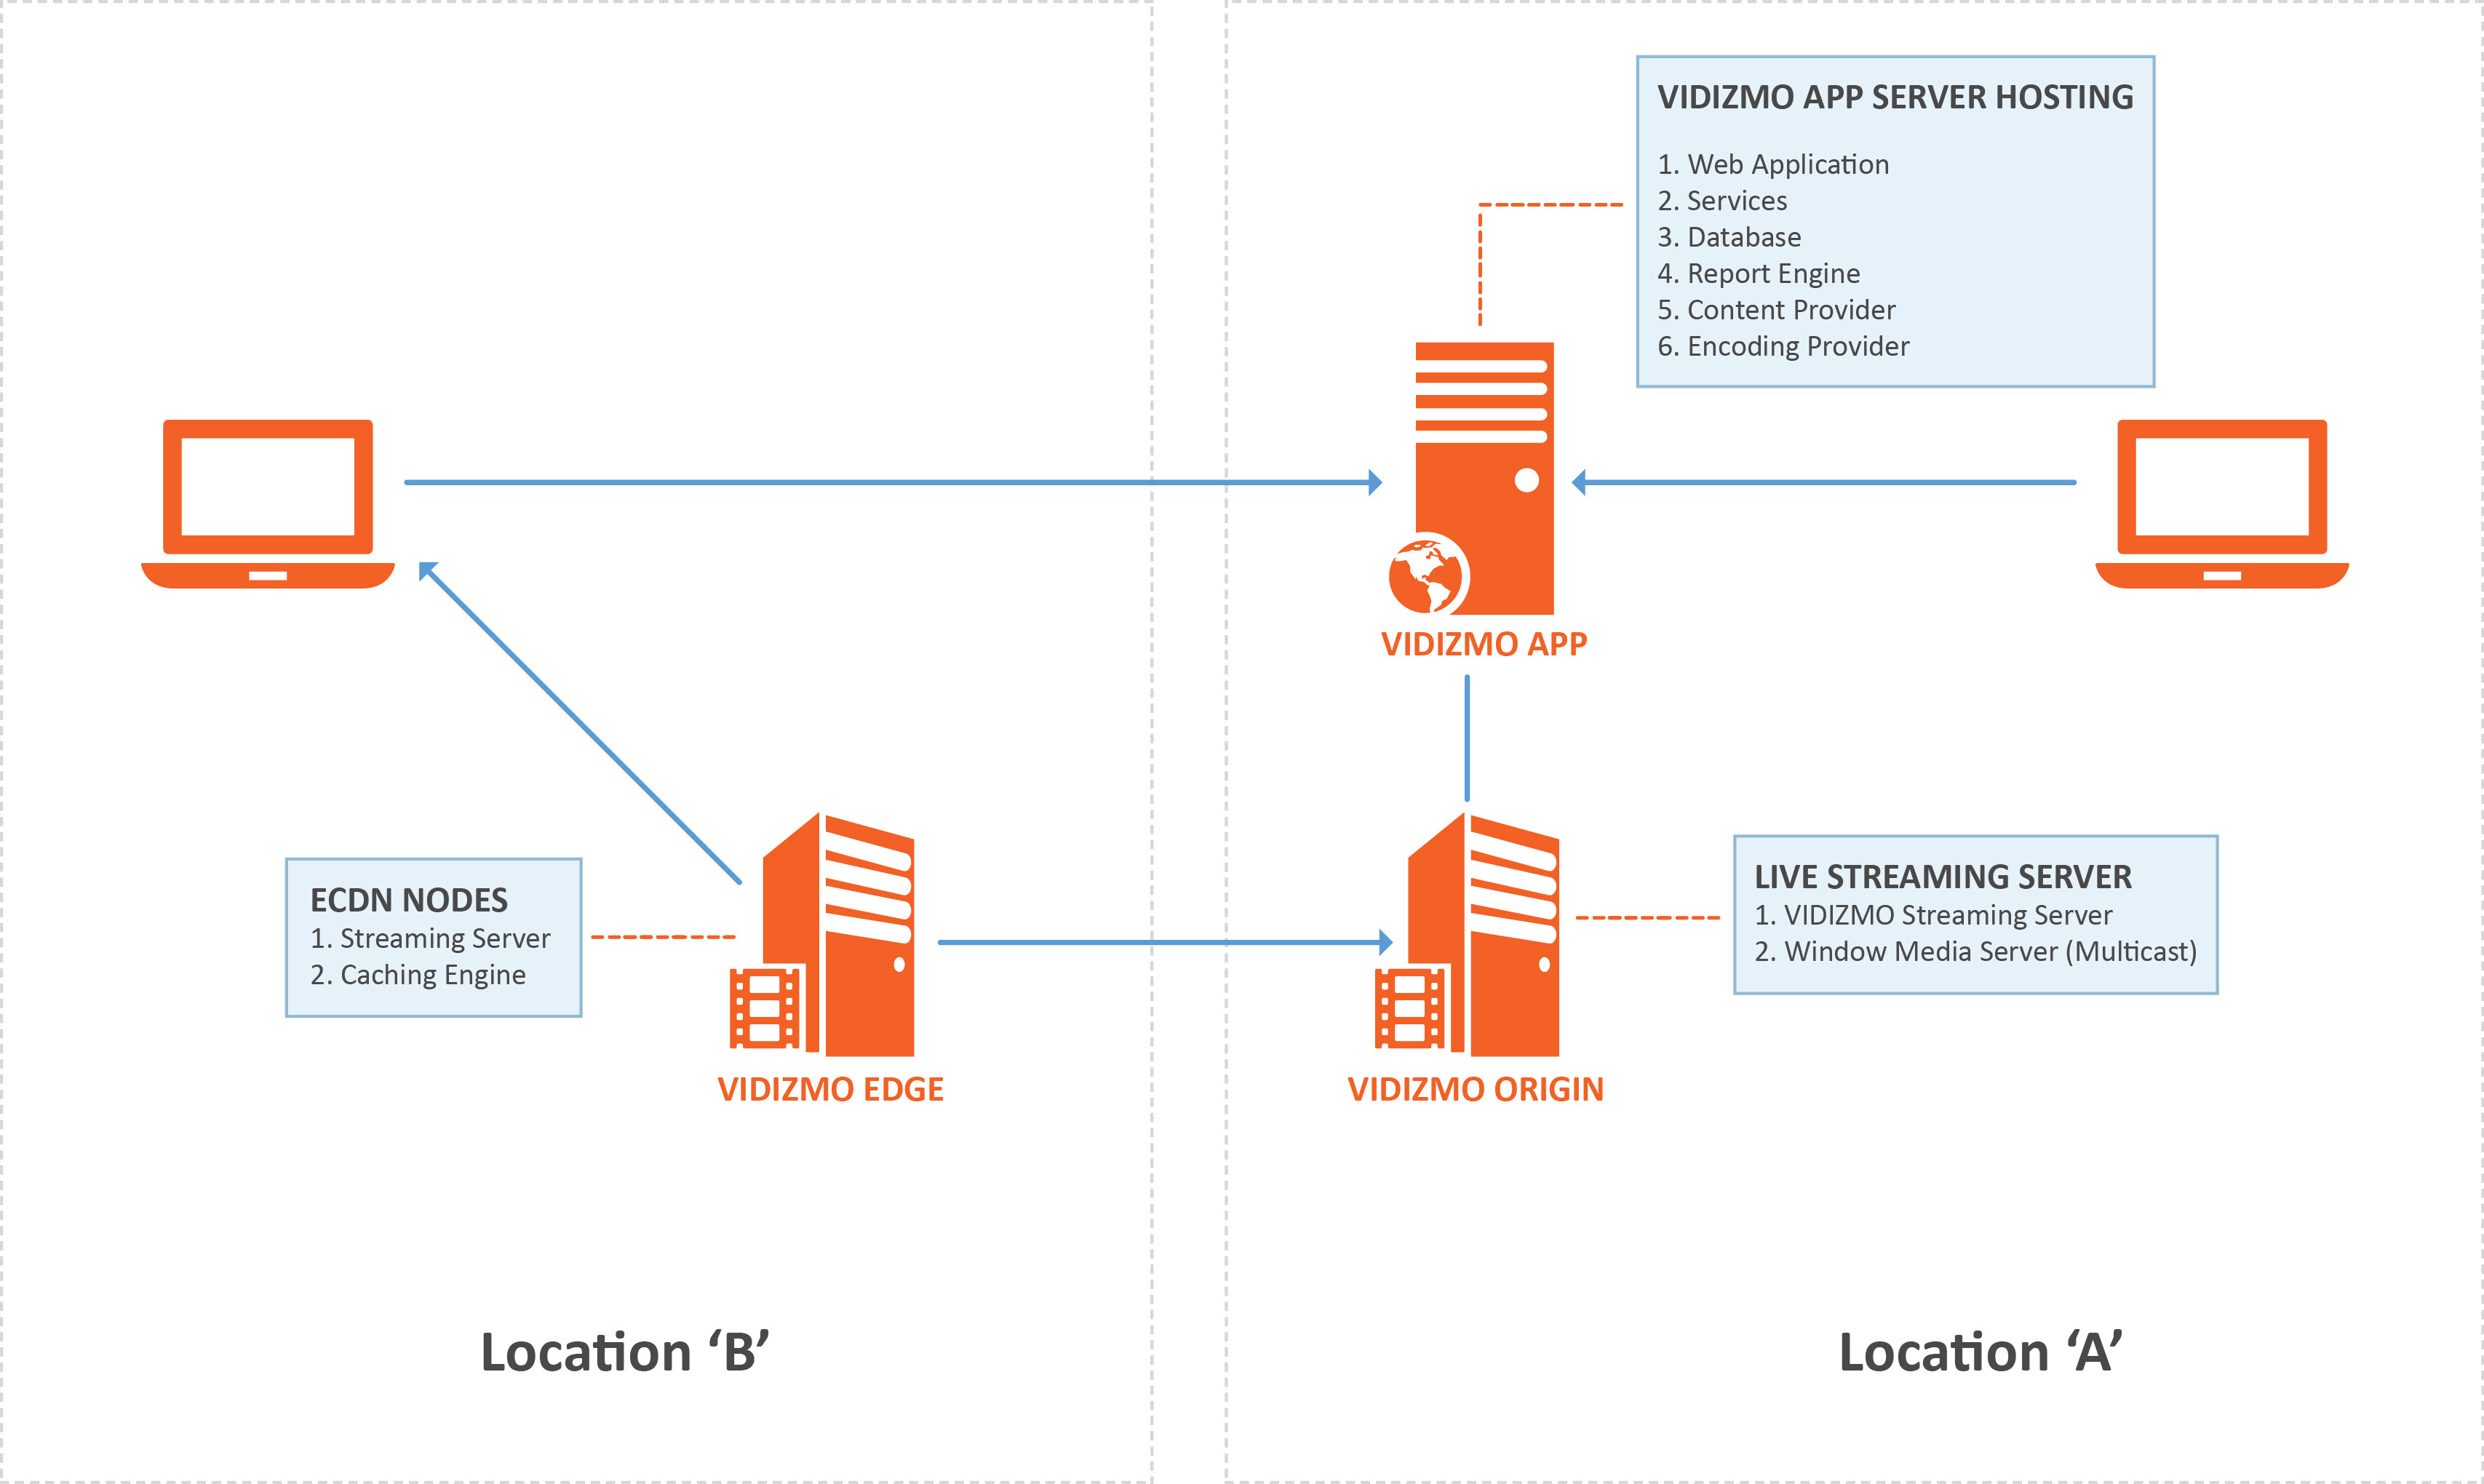 hight resolution of there are a total of 3 vms that make up the entire environment these vms have a different set of components installed to perform different roles